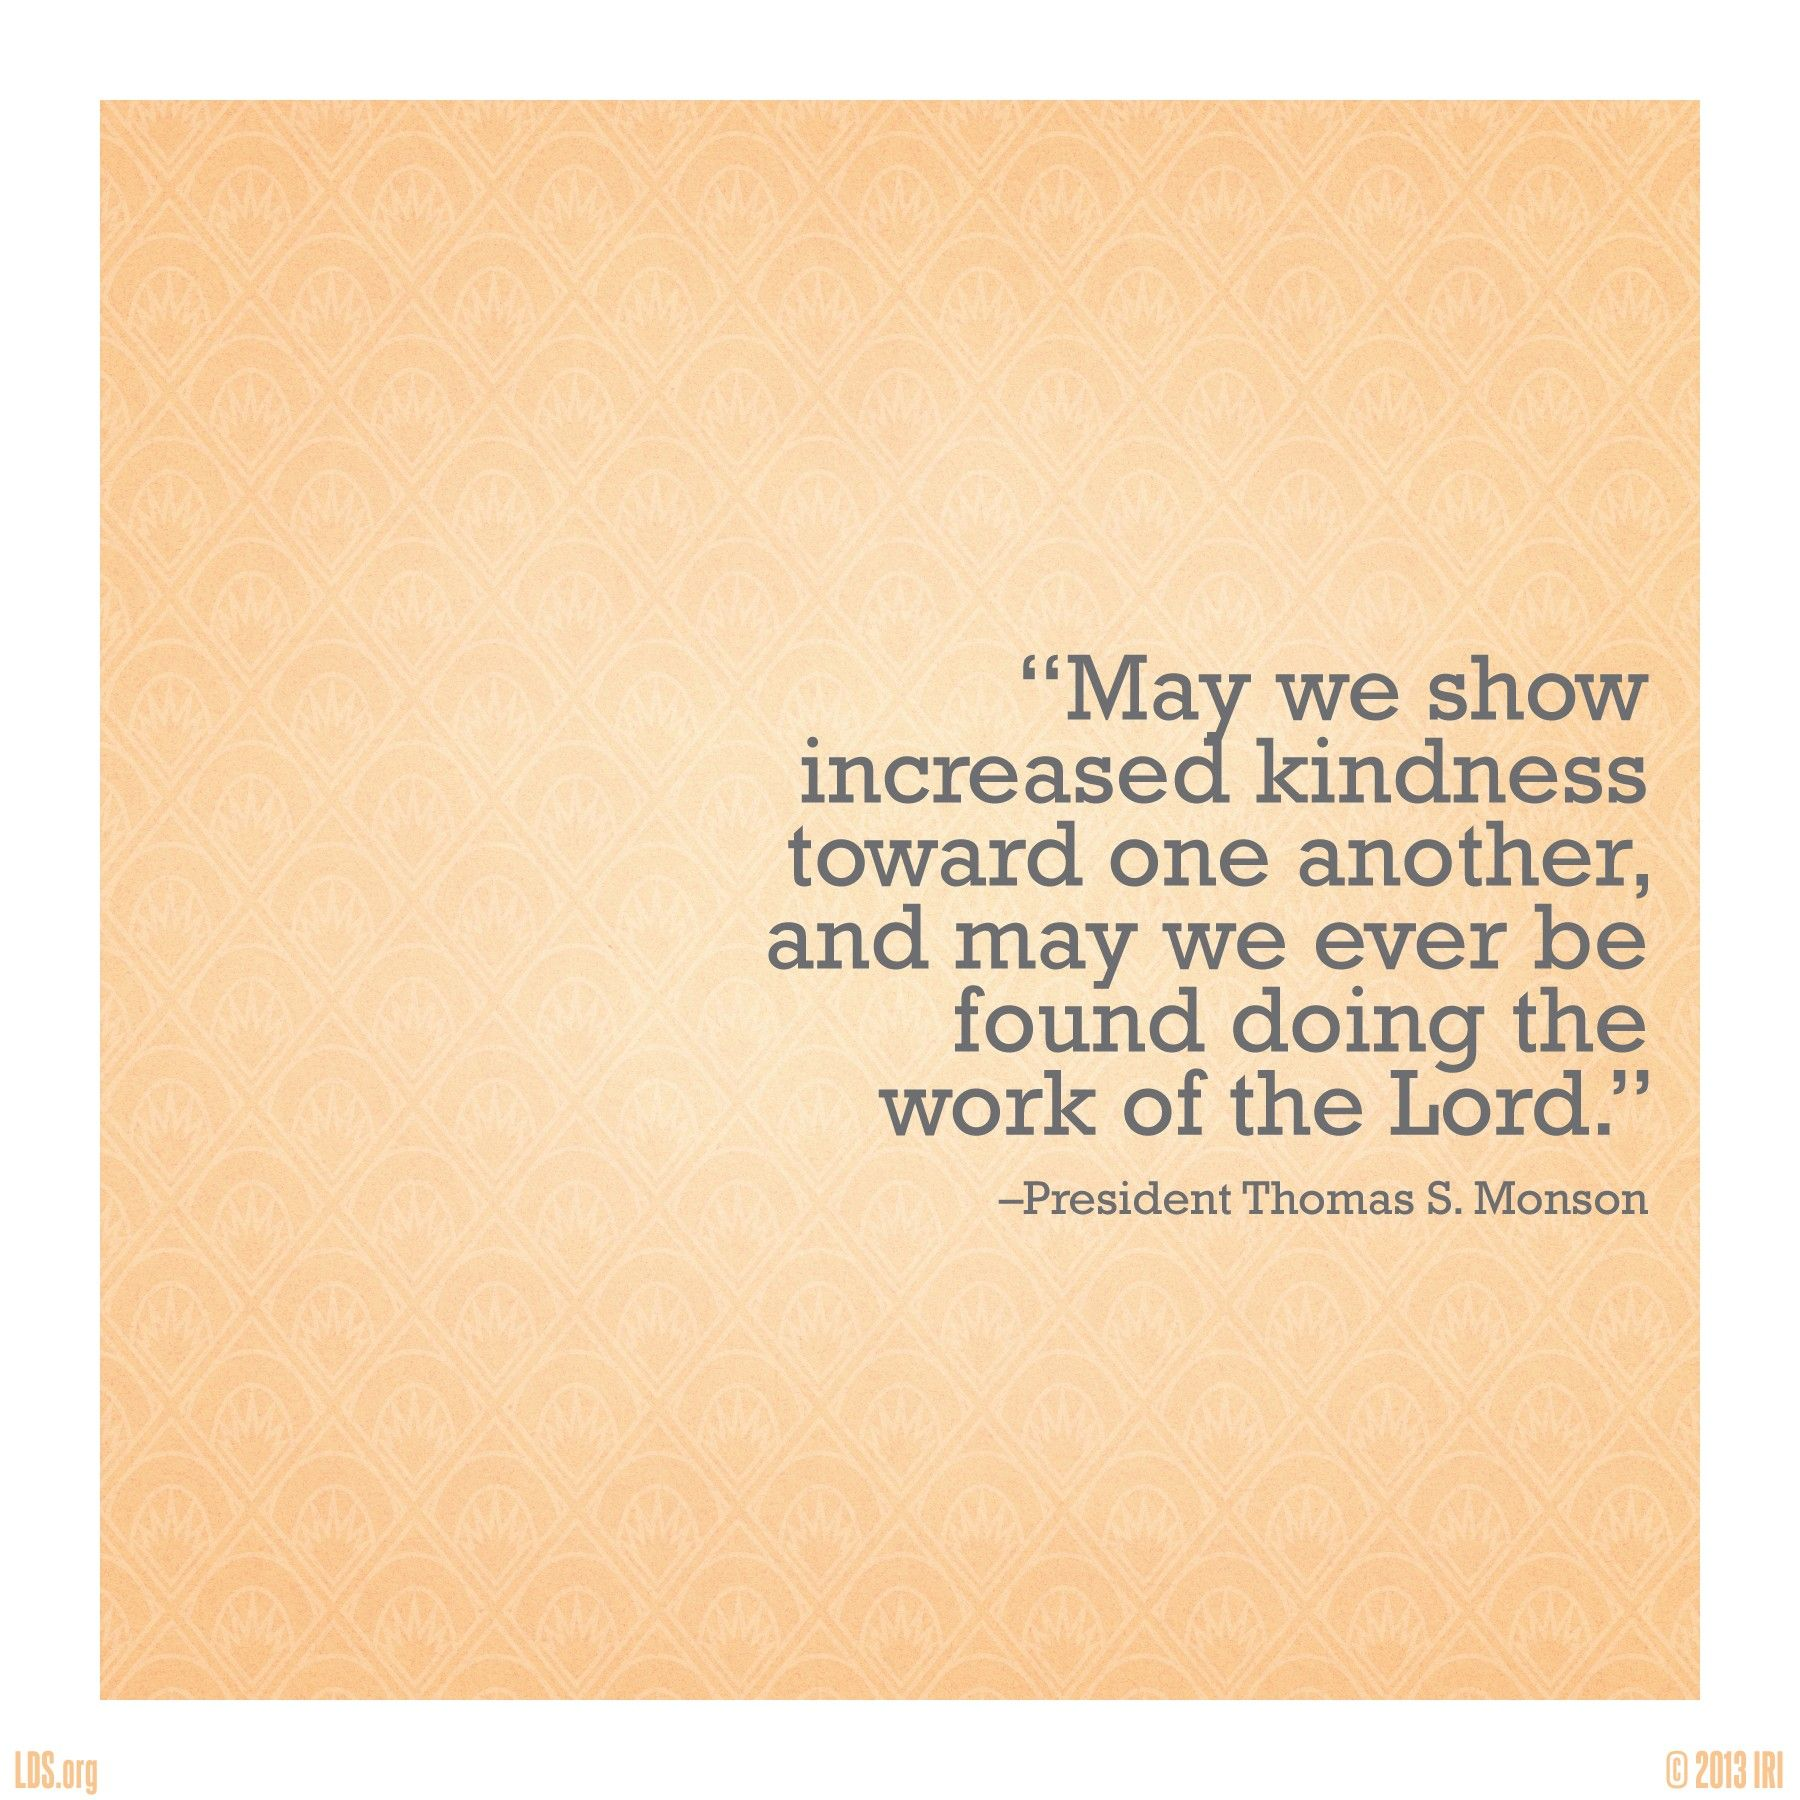 """""""May we show increased kindness toward one another, and may we ever be found doing the work of the Lord.""""—President Thomas S. Monson, """"Till We Meet Again"""""""